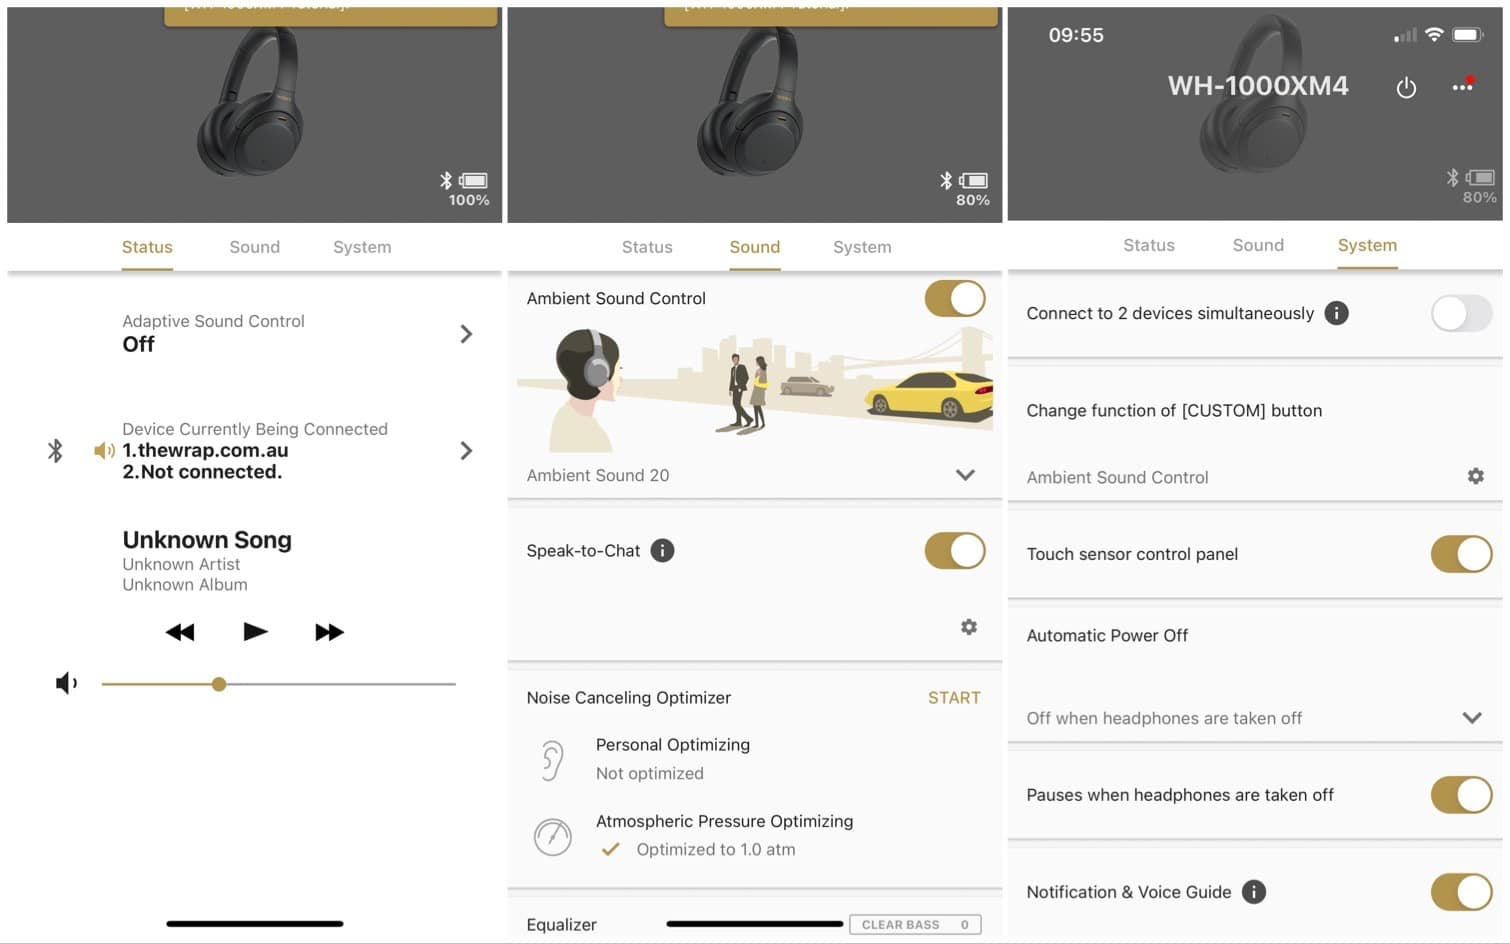 The menus in Sony's new Headphones app for the WH-1000XM4